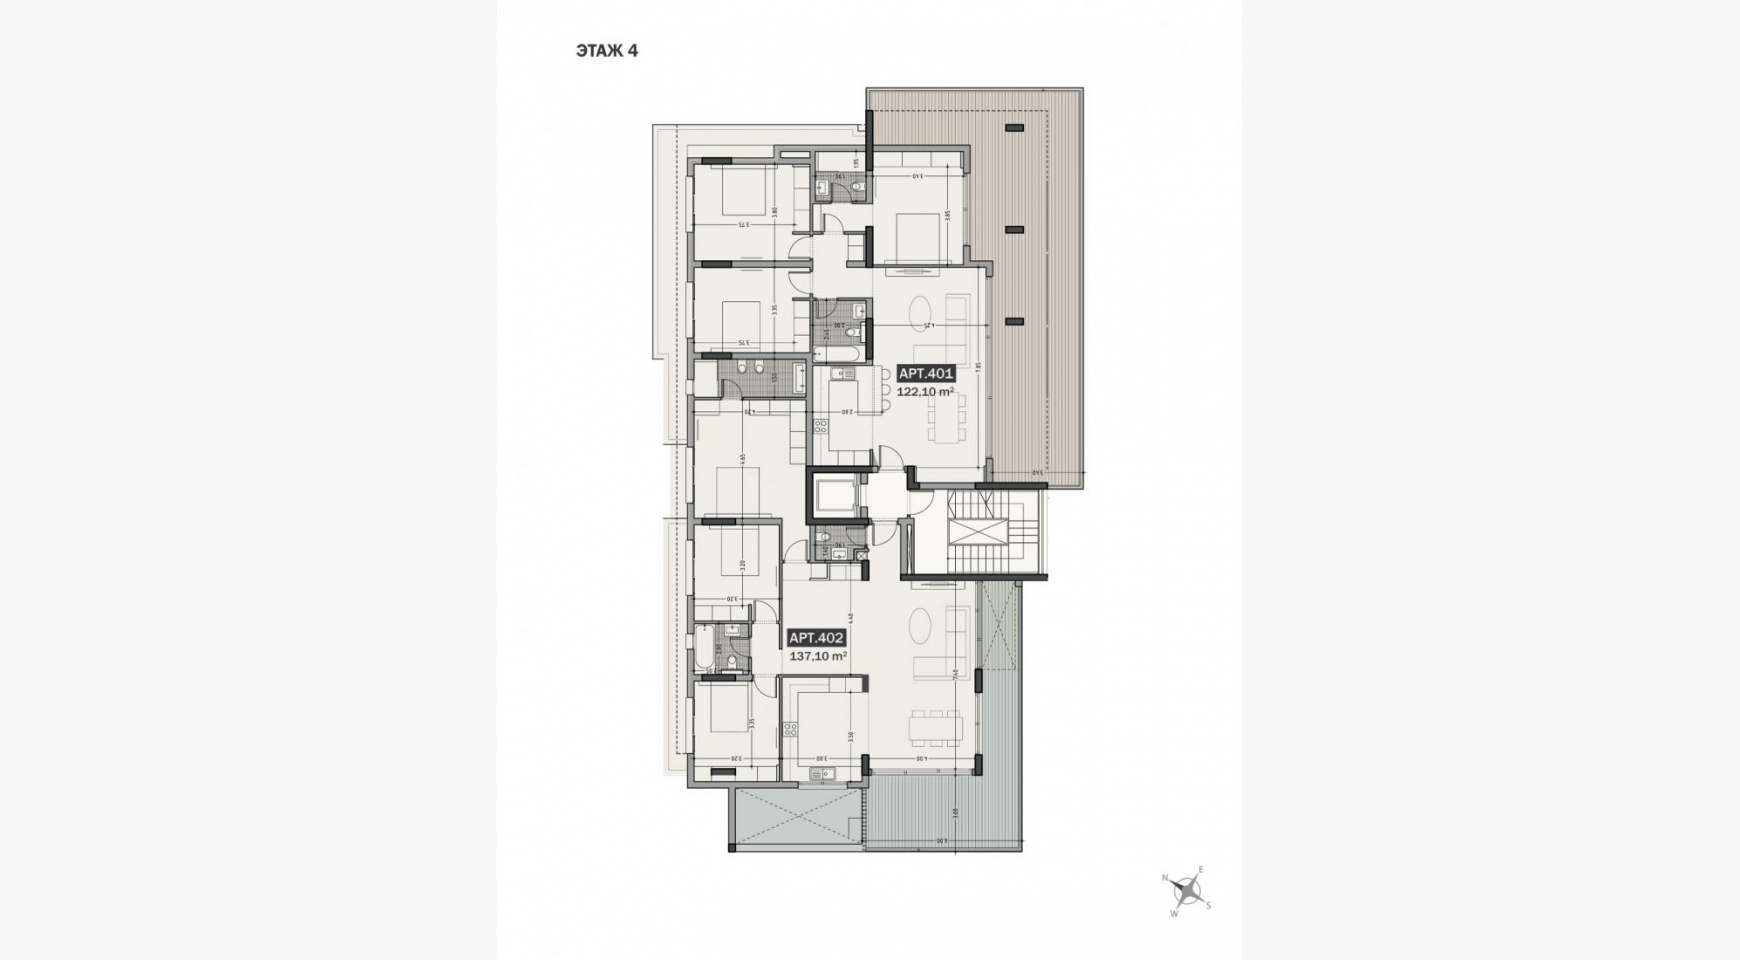 Hortensia Residence, Apt. 203. 3 Bedroom Apartment within a New Complex near the Sea - 33